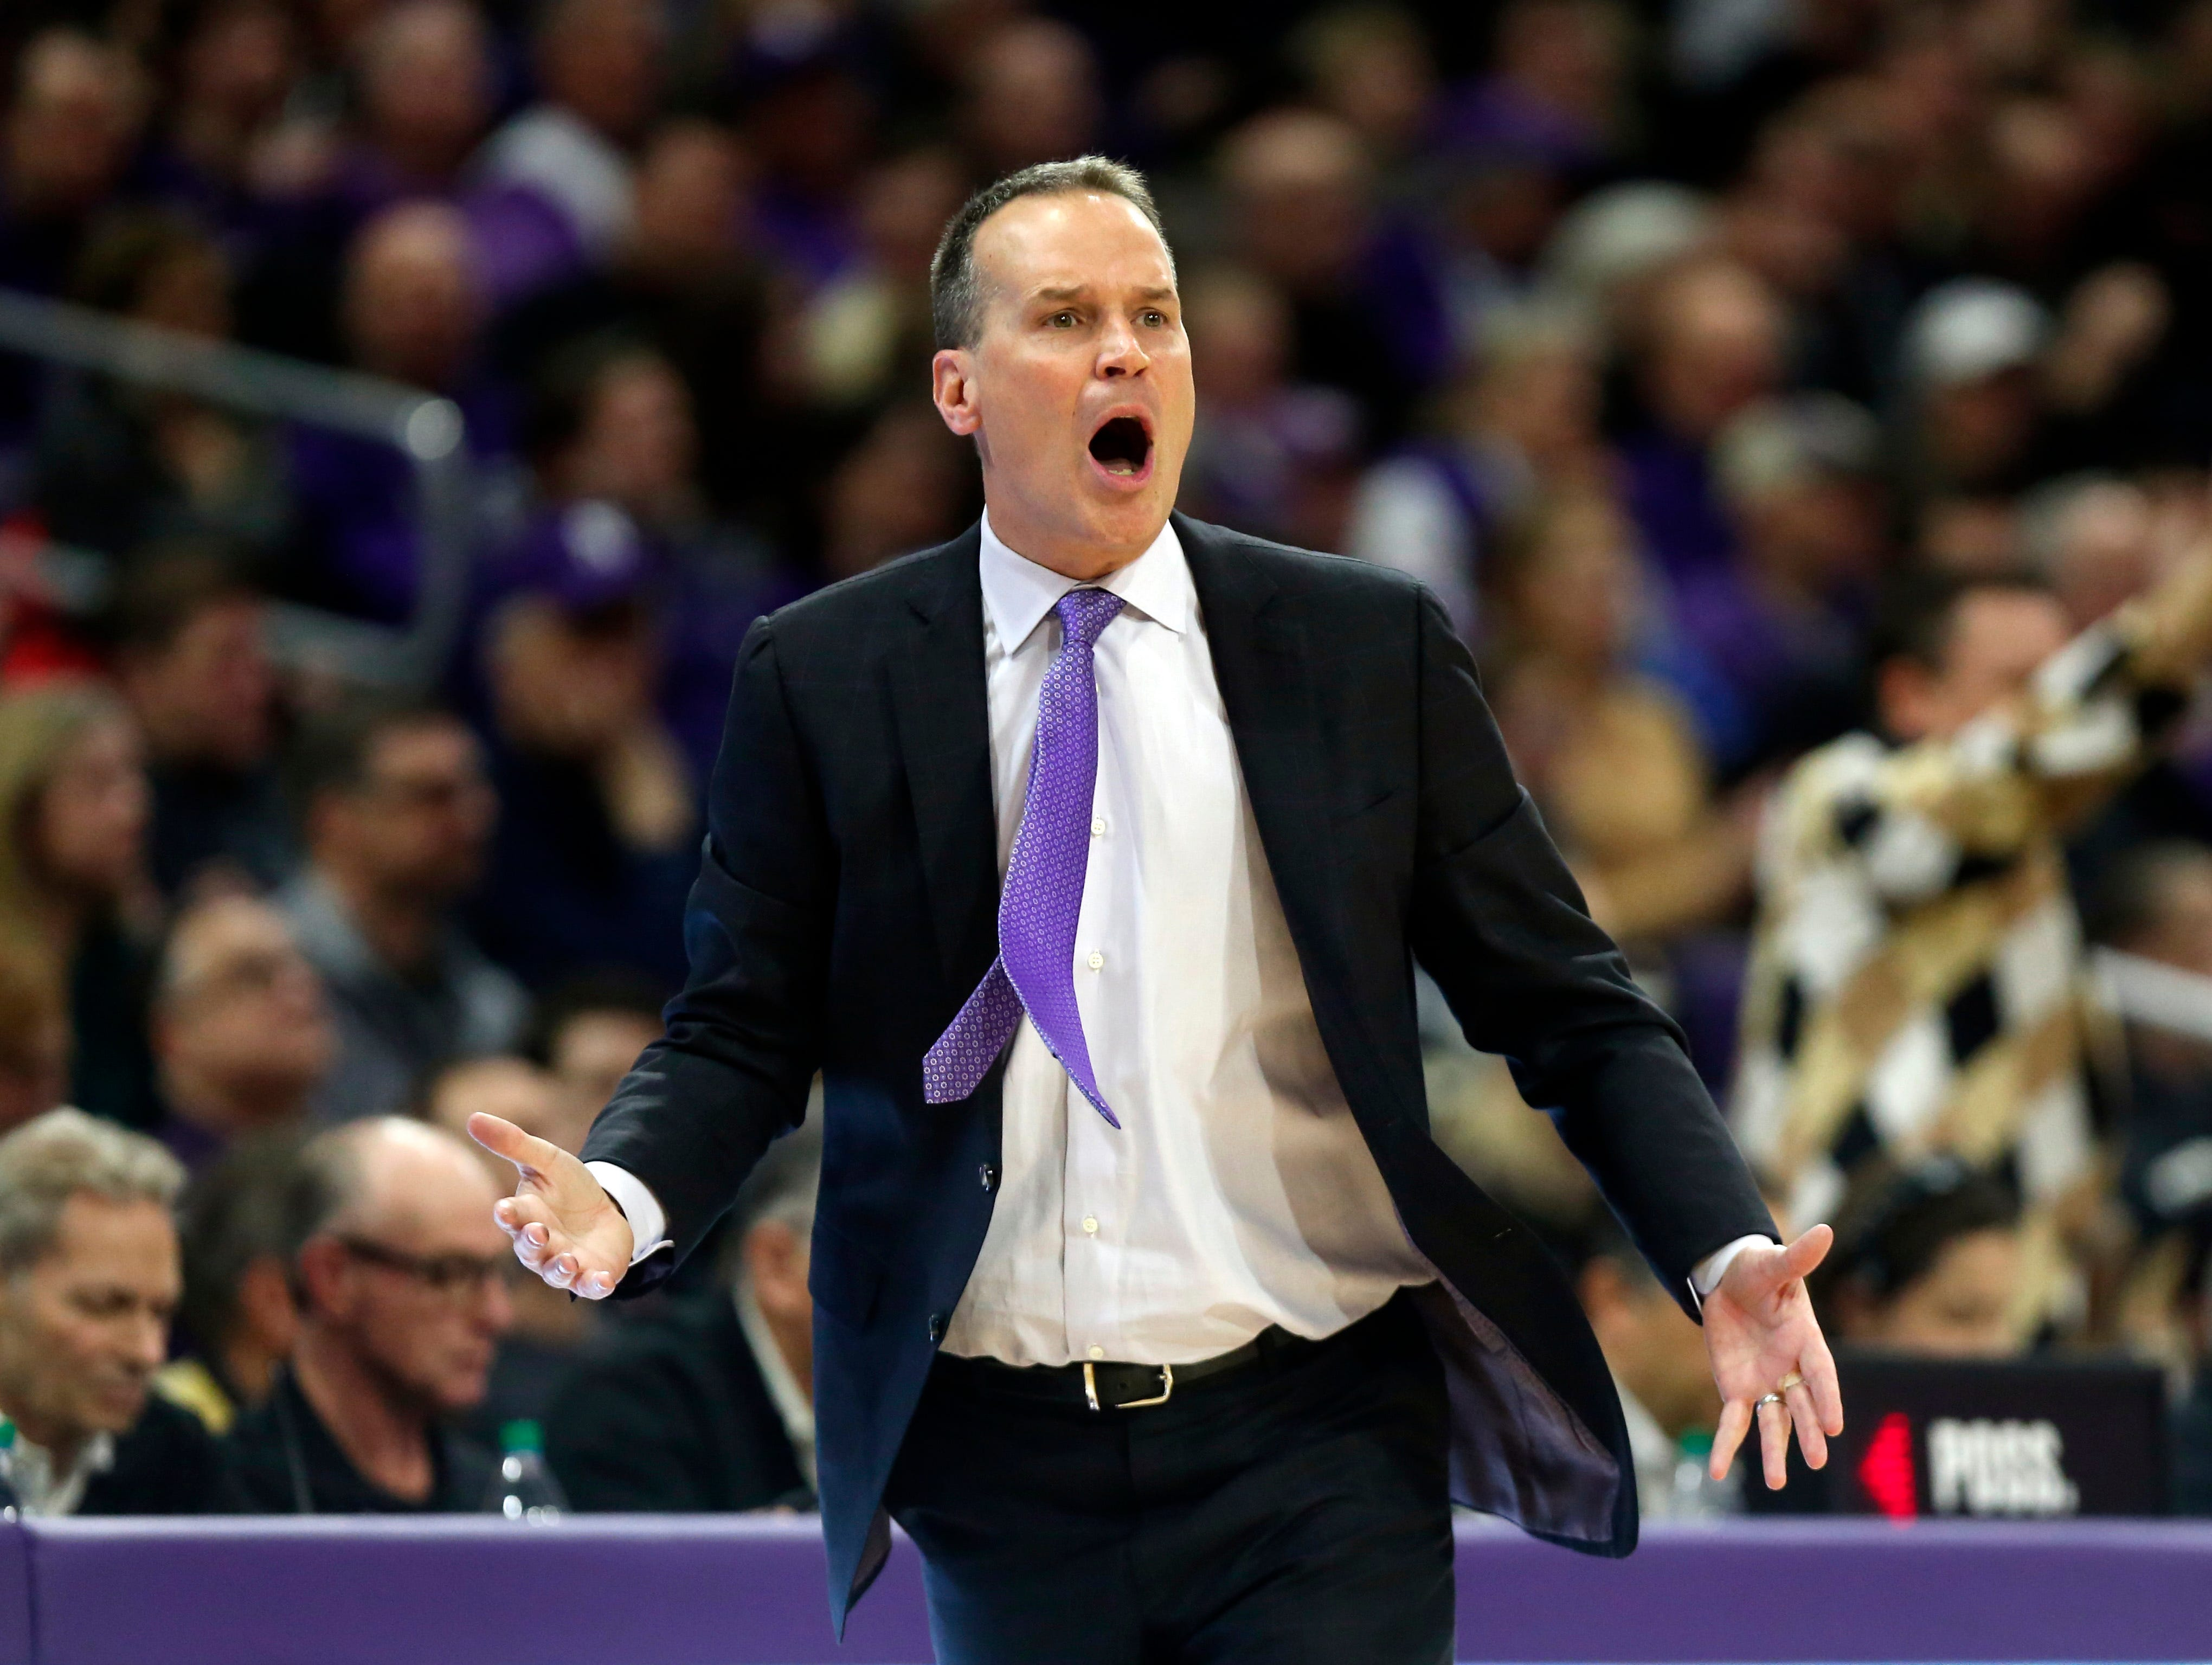 Mar 9, 2019; Evanston, IL, USA; Northwestern Wildcats head coach Chris Collins reacts during the first half against the Purdue Boilermakers at Welsh-Ryan Arena. Mandatory Credit: Nuccio DiNuzzo-USA TODAY Sports